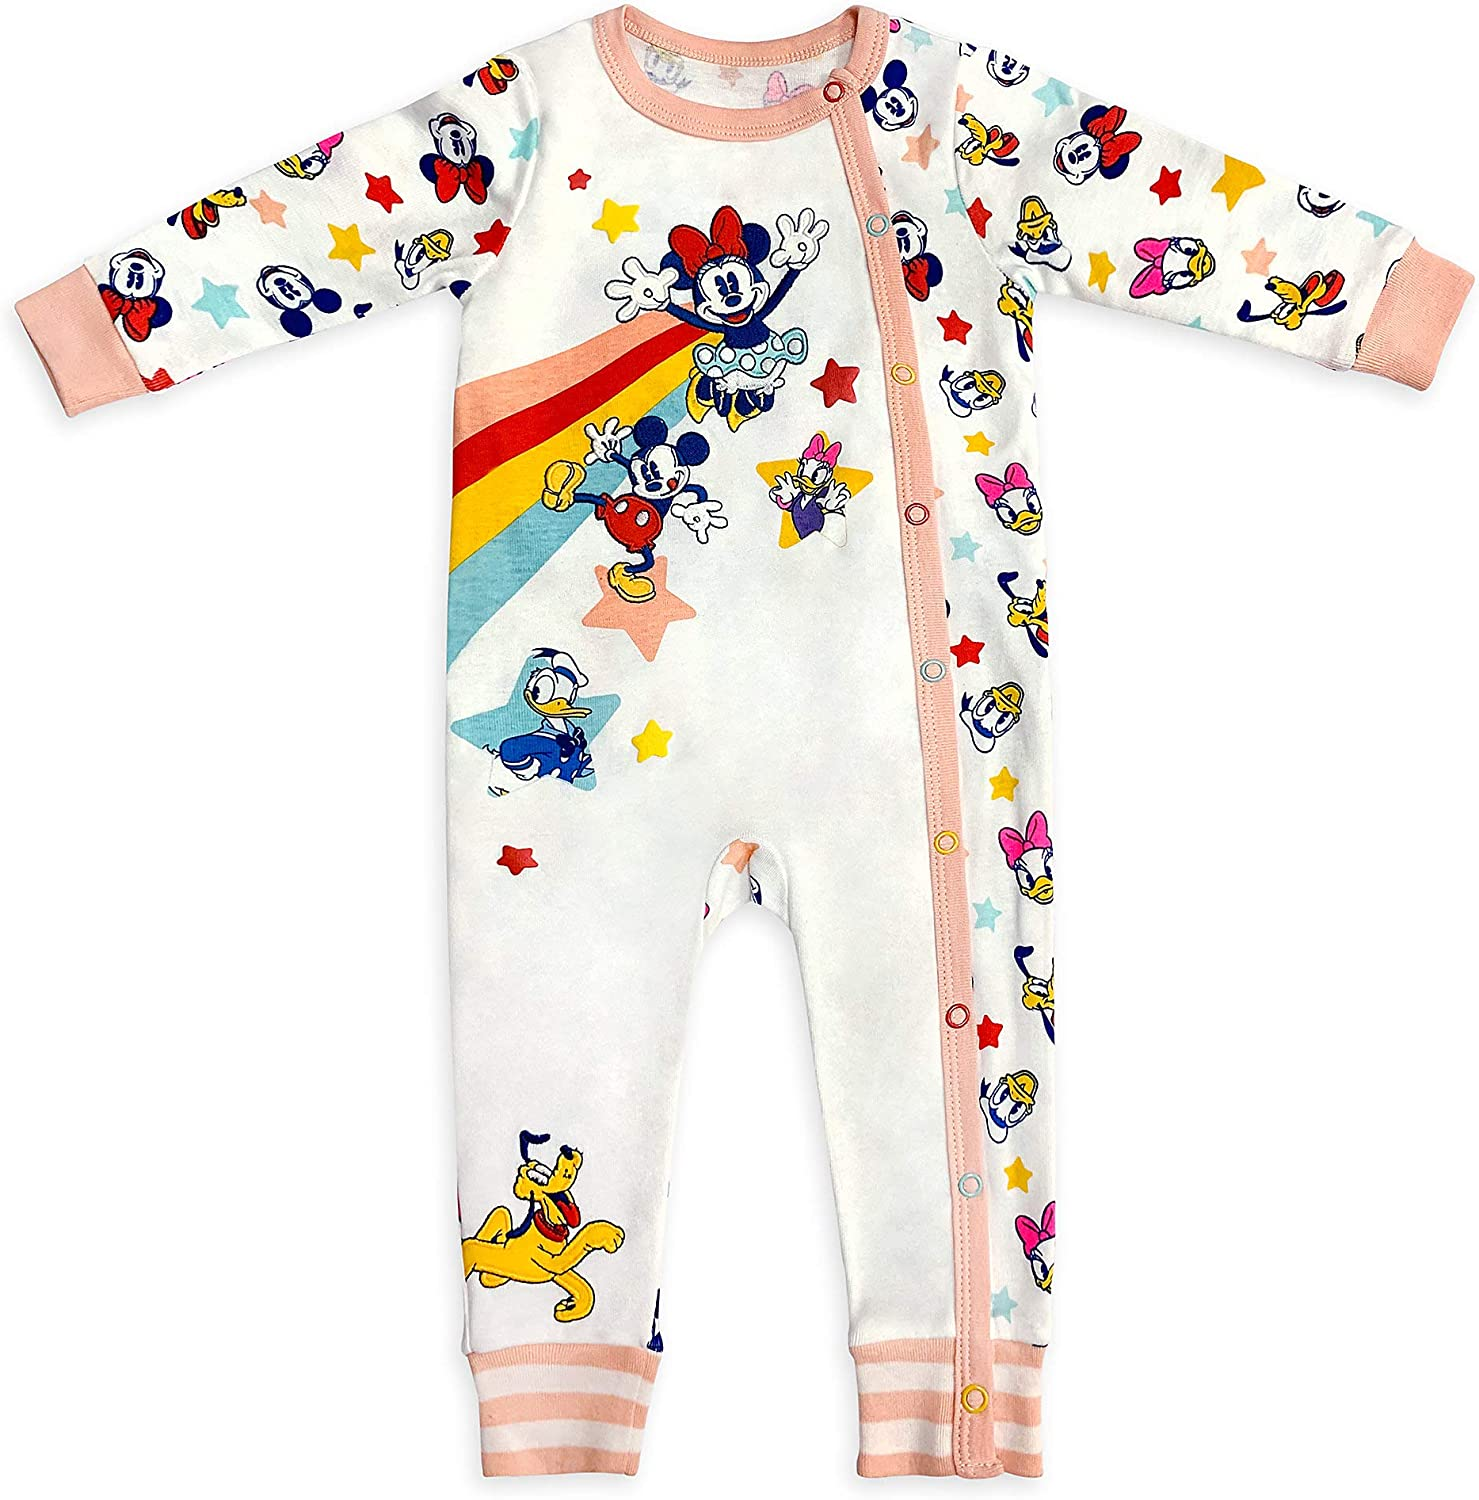 Disney Bombing free shipping Mickey Mouse and Friends Stretchie Size Baby service for Sleeper